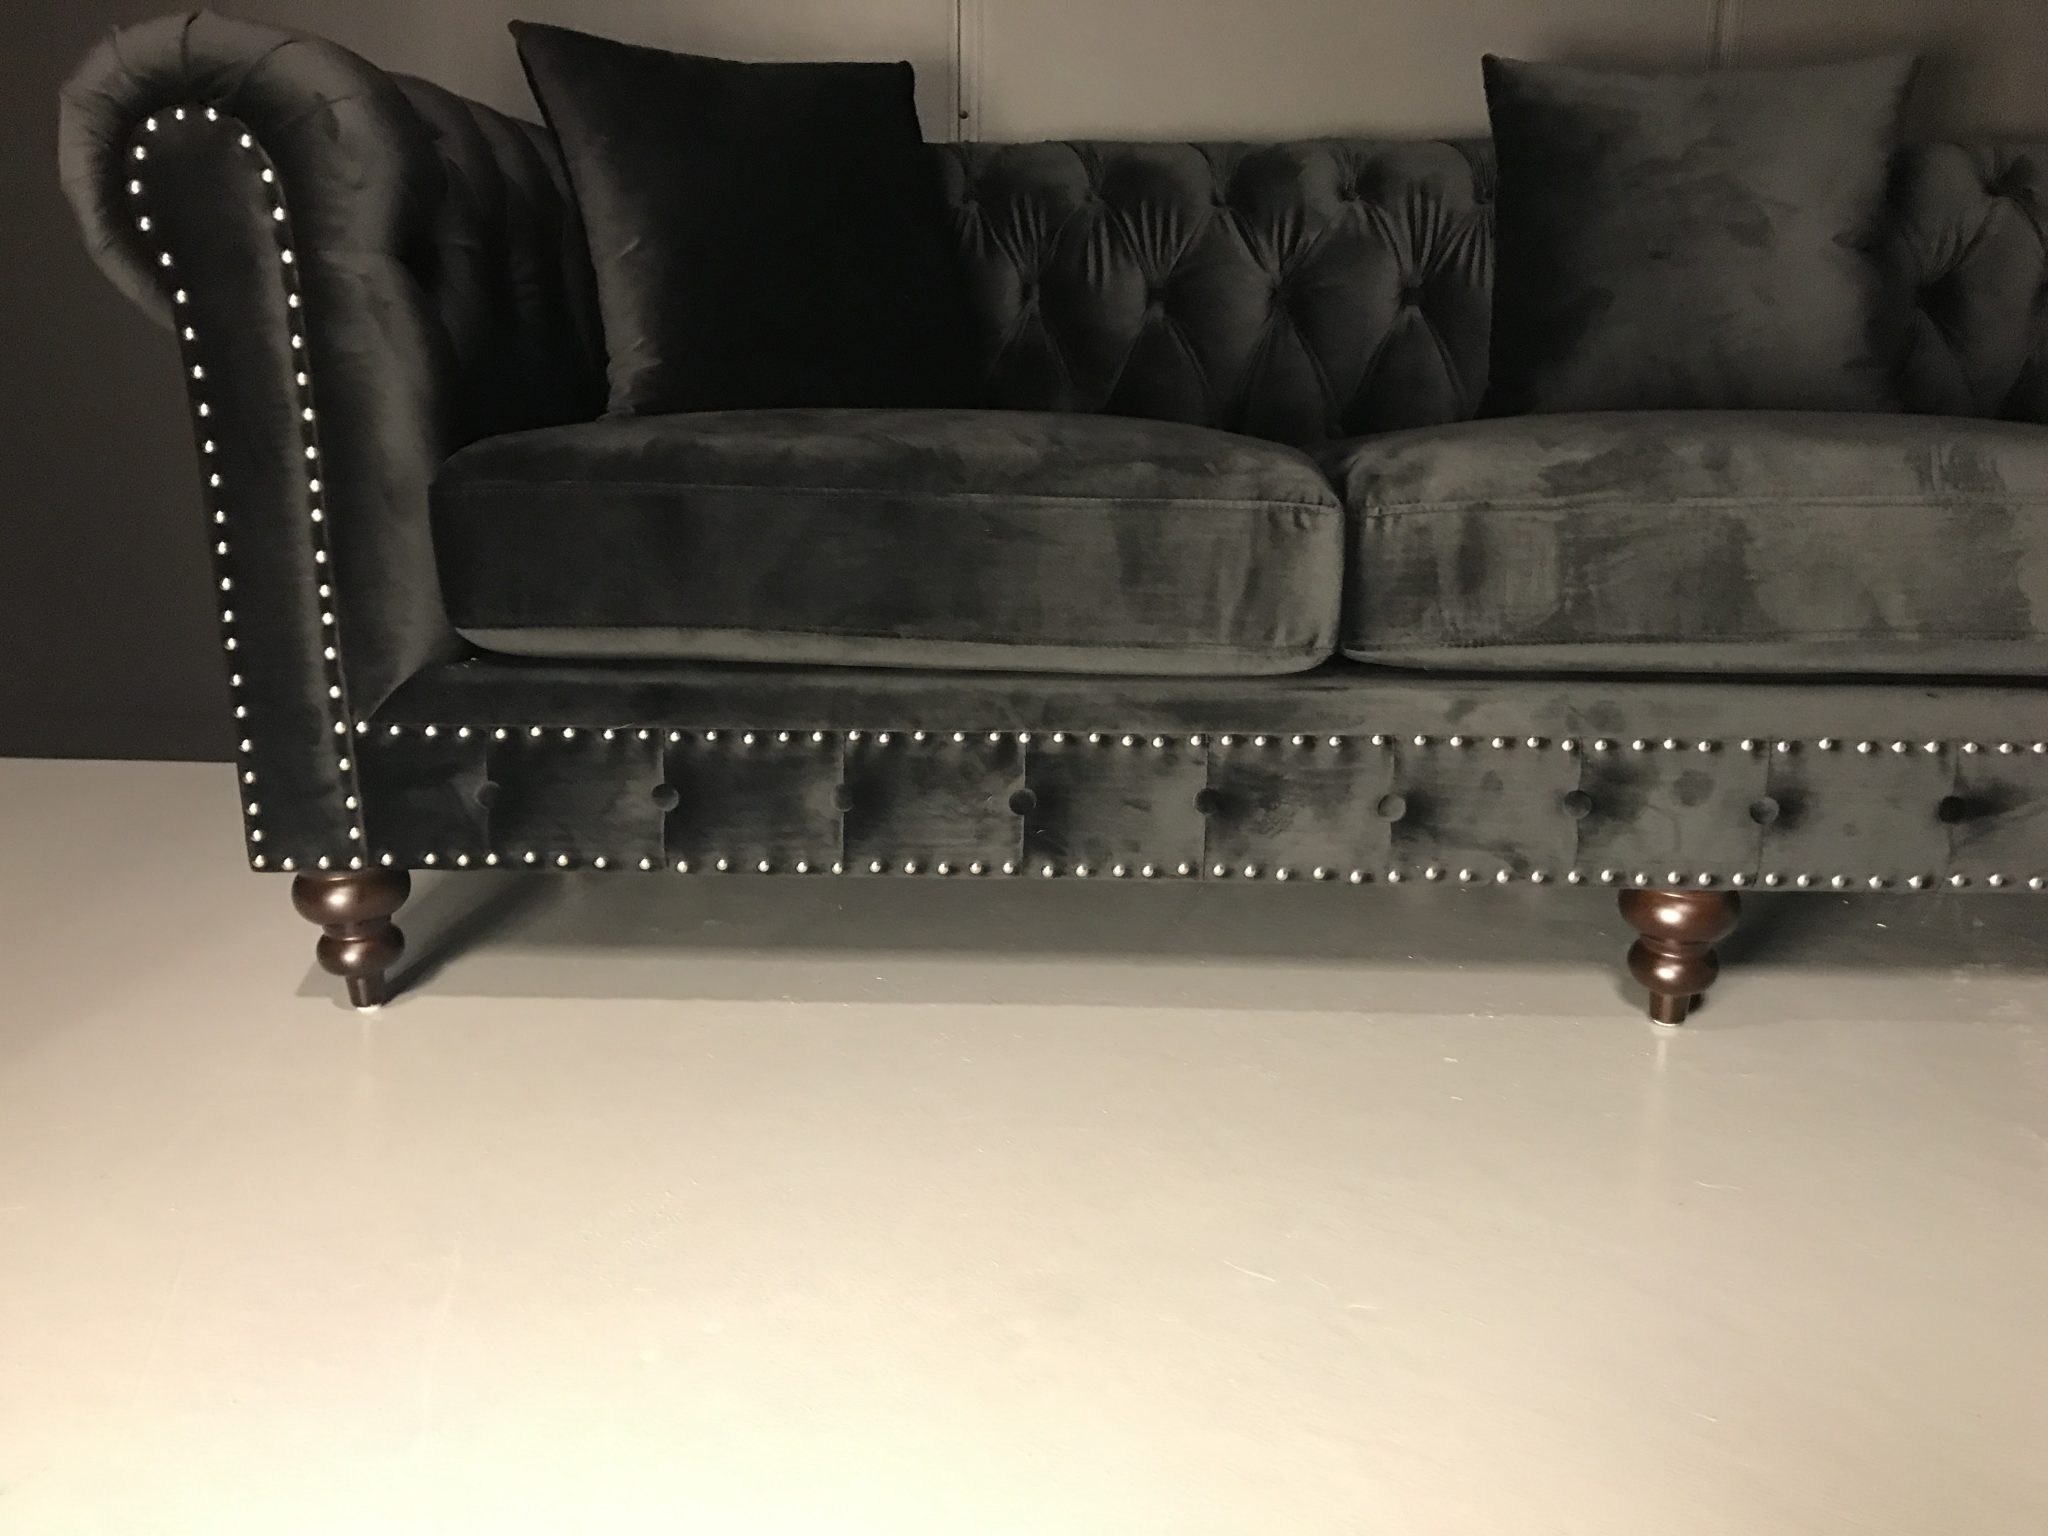 nydelig napoli chesterfield sofa i velour n p tilbud. Black Bedroom Furniture Sets. Home Design Ideas